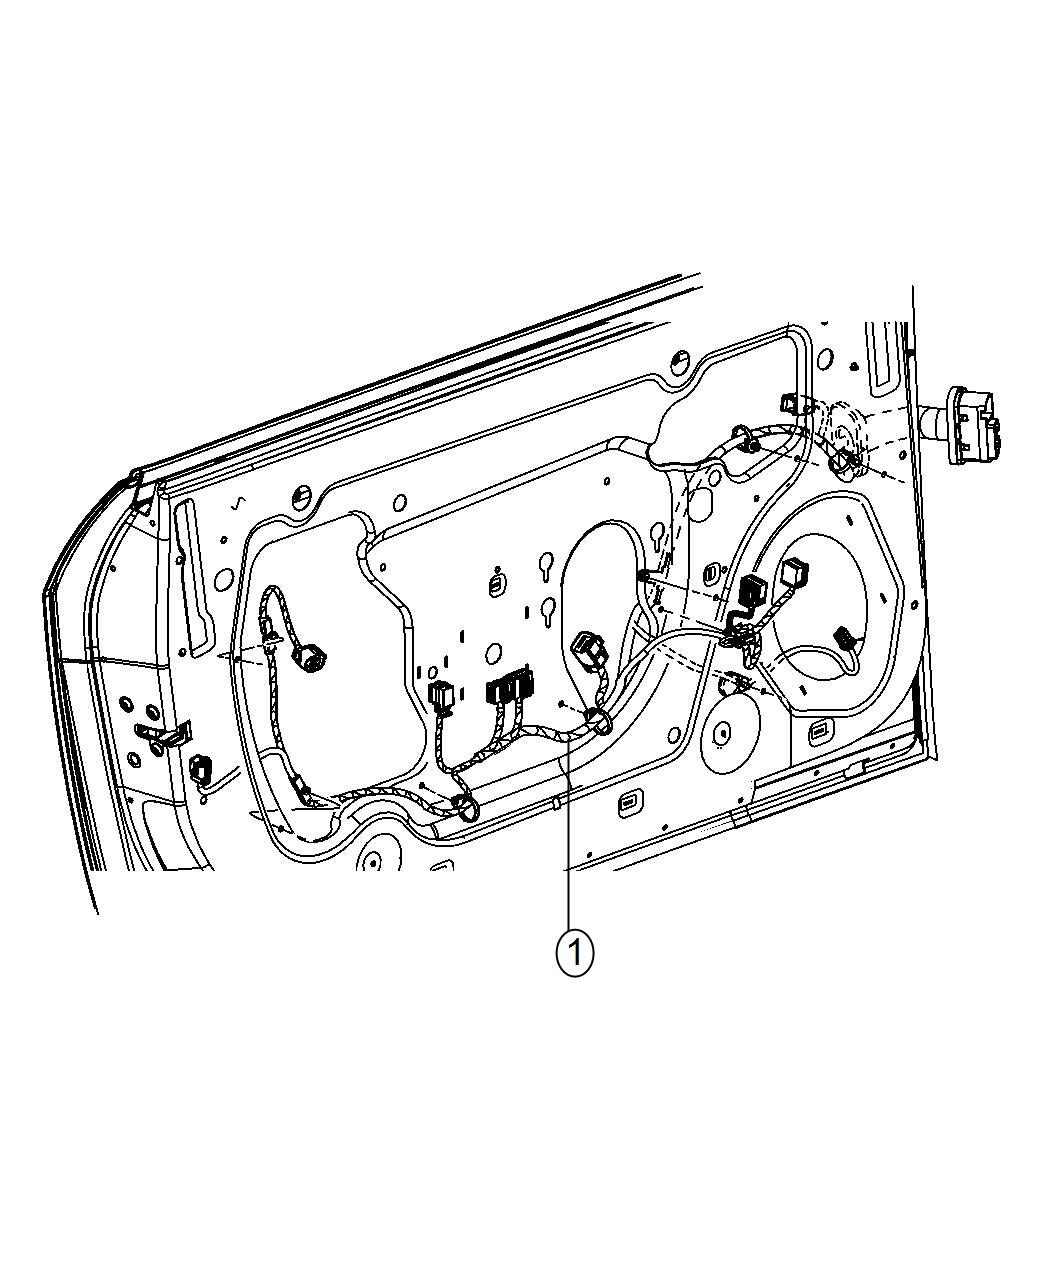 i2299757  Dodge Ram Door Wiring Diagram on dodge ram headlight wiring diagram, dodge ram door parts, dodge ram door lights, dodge ram light wiring diagram, dodge ram door assembly, dodge ram door speaker size, dodge ram engine wiring diagram, dodge ram door lock diagram, dodge ram power window wiring diagram,